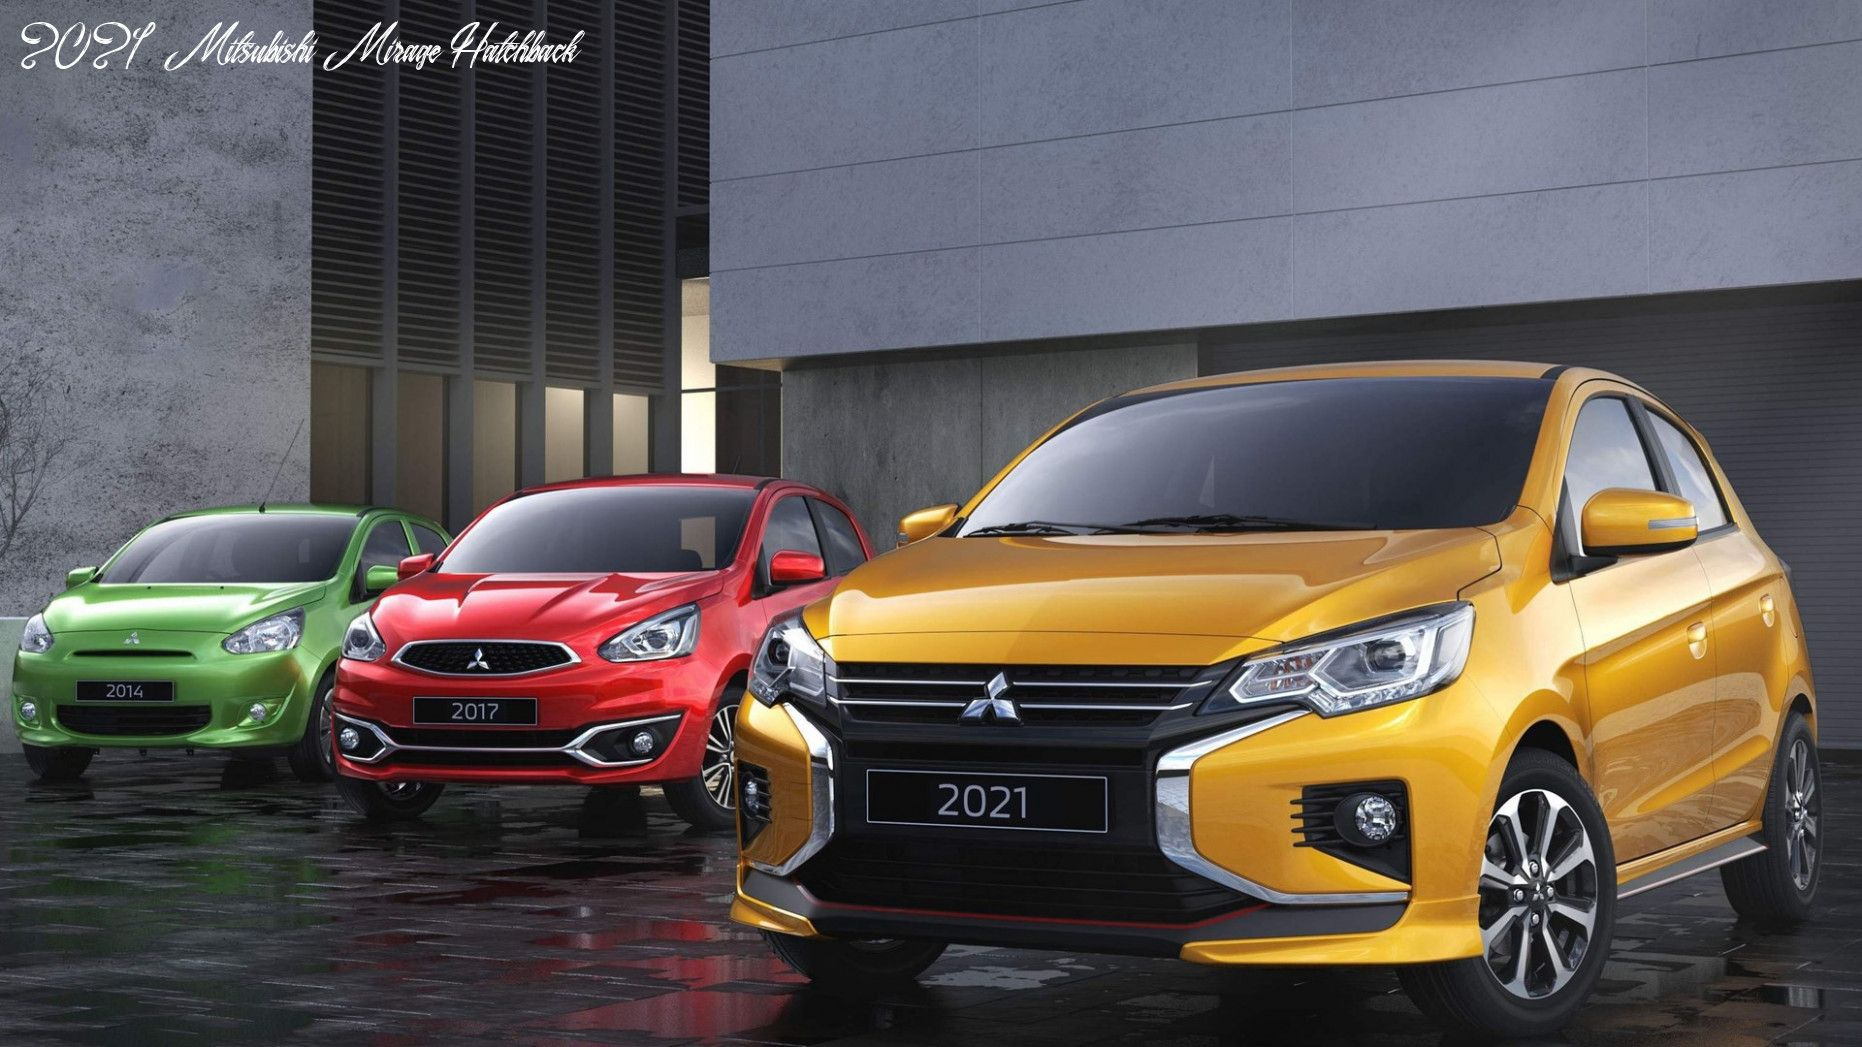 2021 mitsubishi mirage hatchback concept and review in